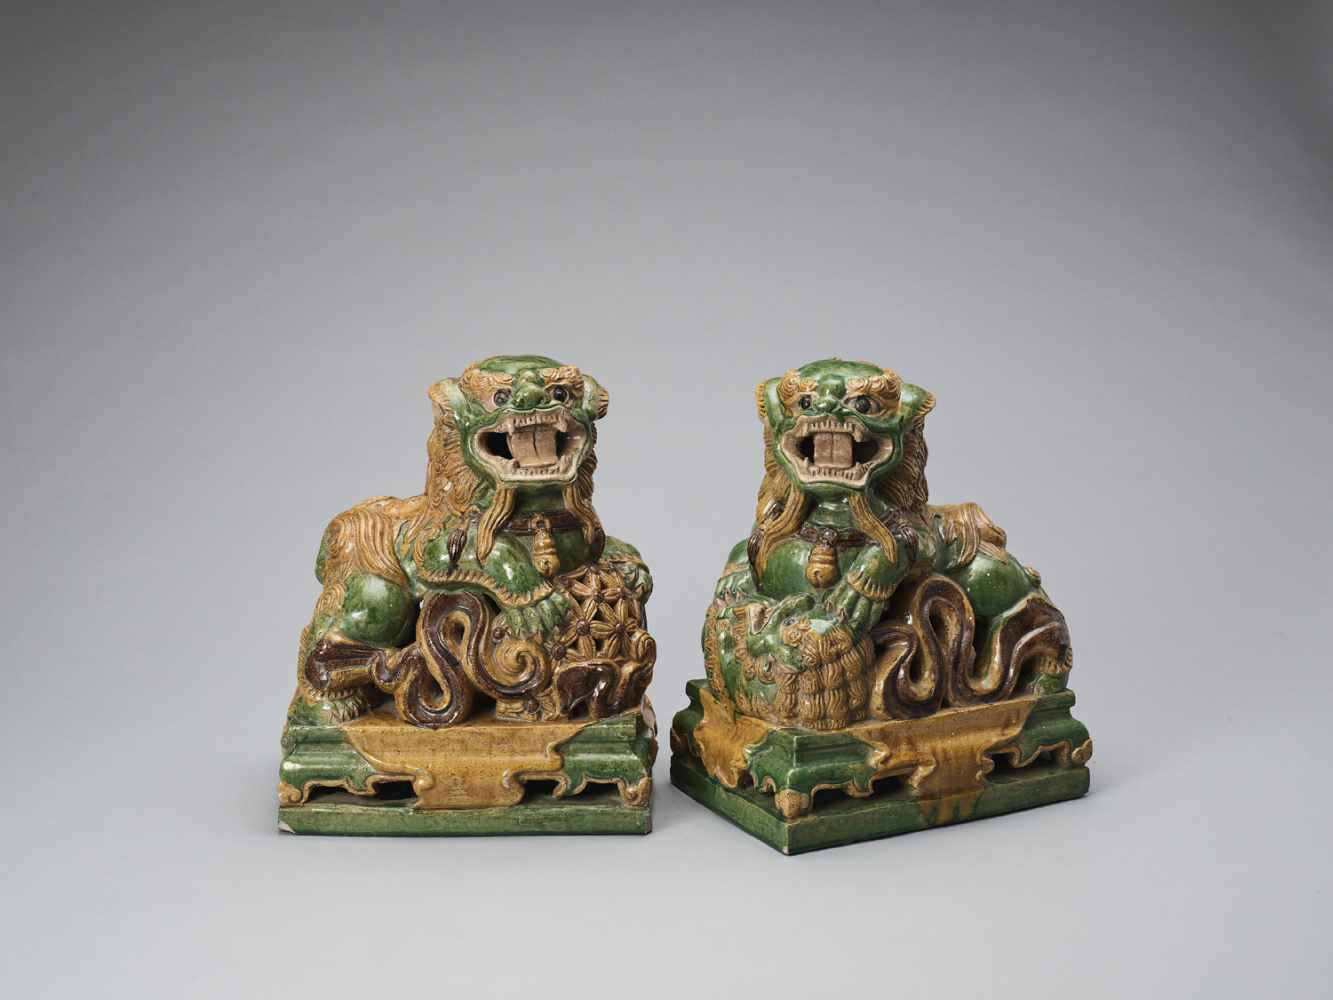 A PAIR OF RETICULATED SANCAI GLAZED POTTERY BUDDHIST LIONS, LATE MING TO EARLIER QING